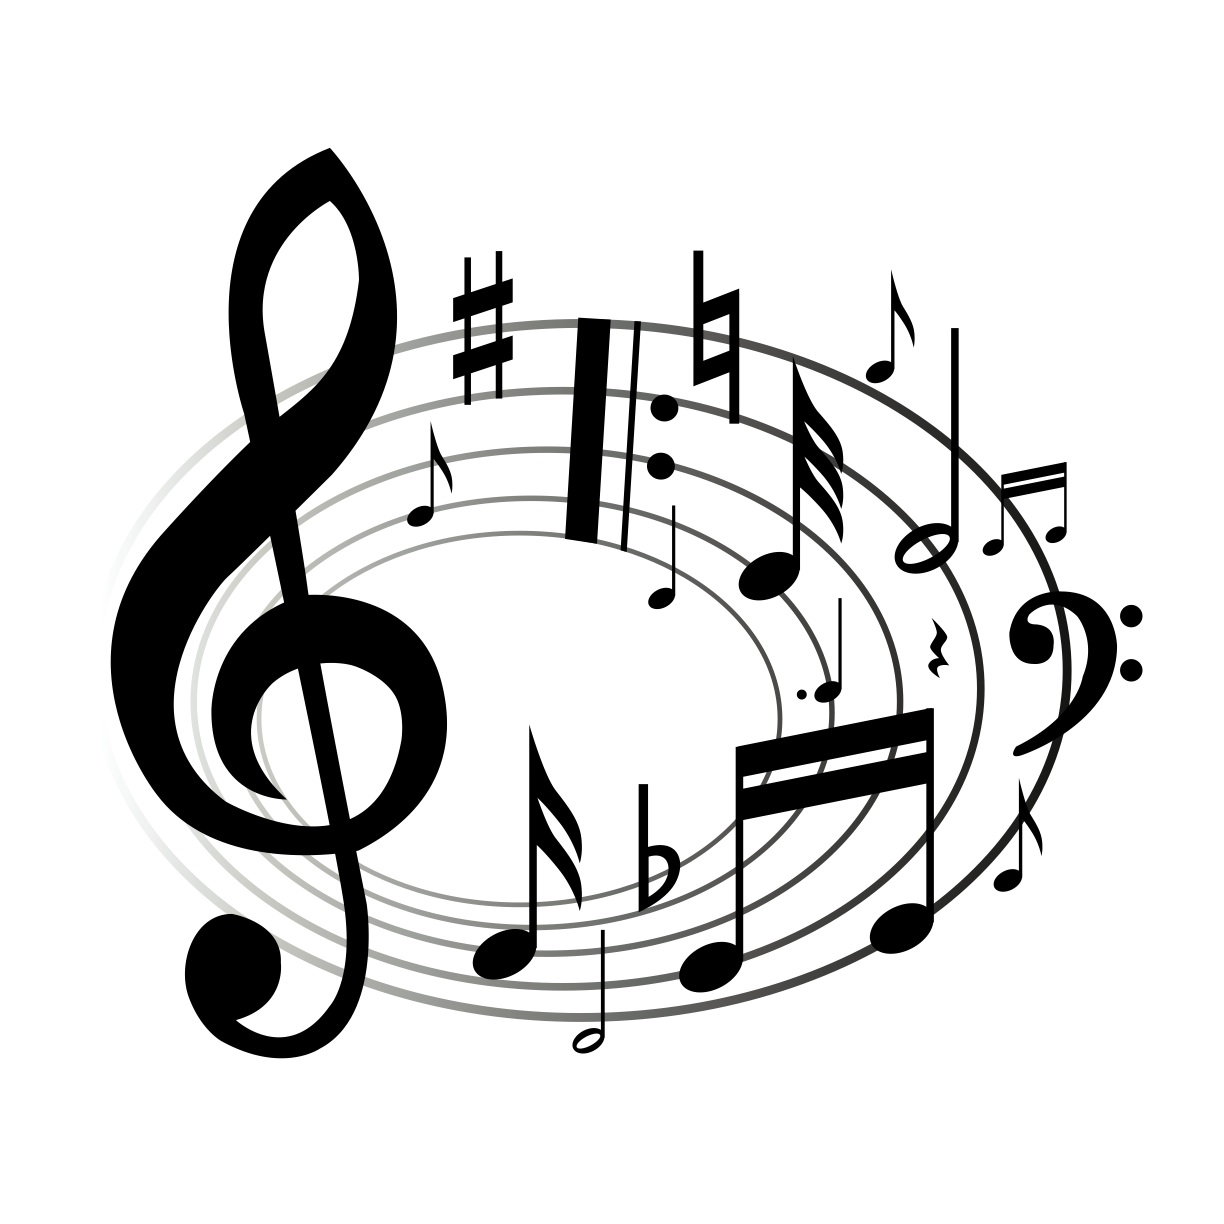 gratis clipart music - photo #13